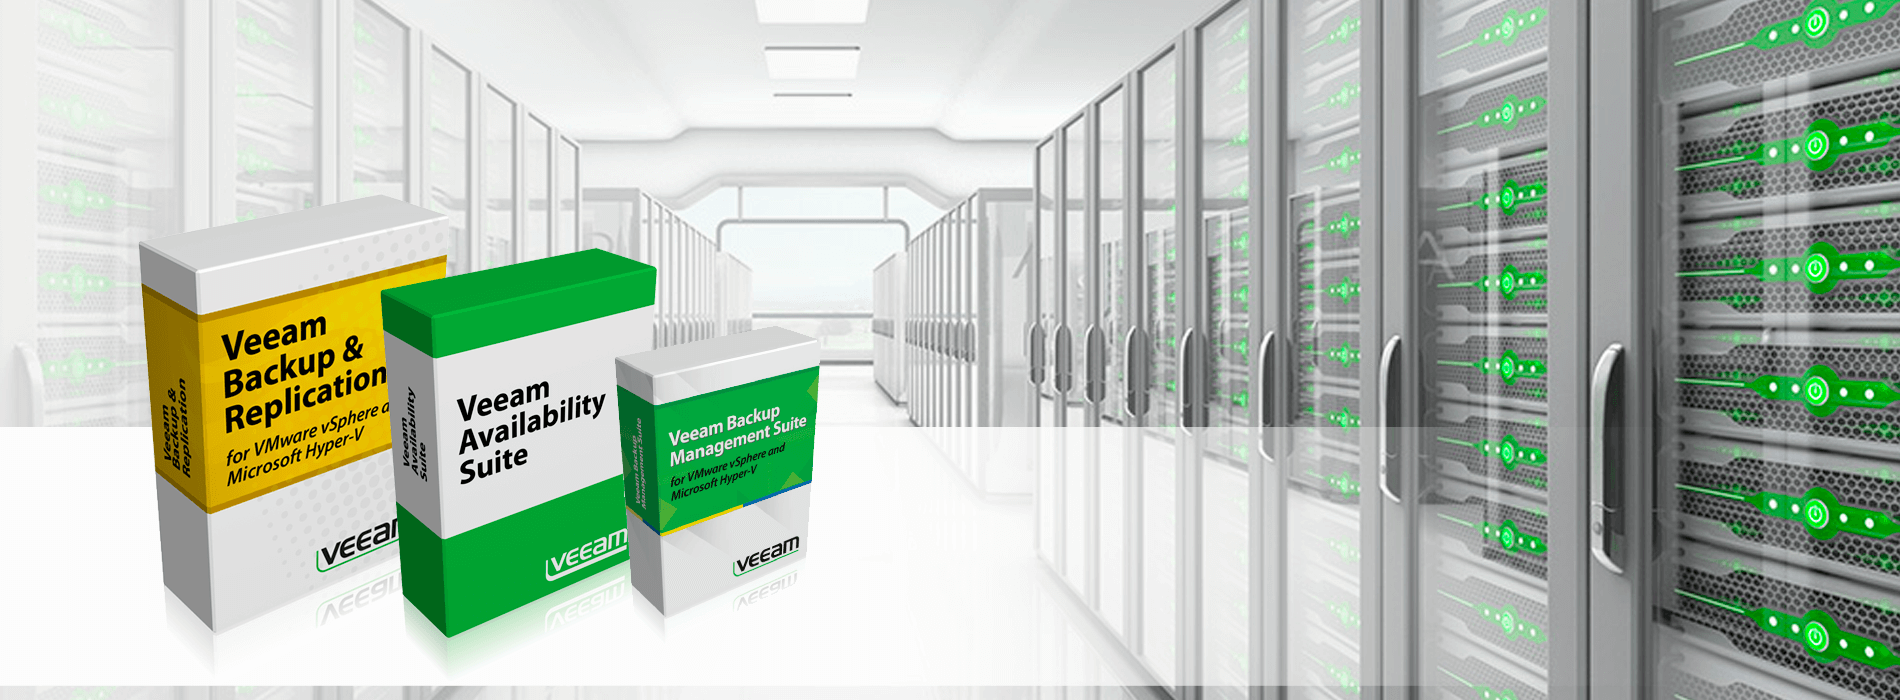 Soluciones de back up y recuperación anti desastres Veeam para empresas - ENETIC